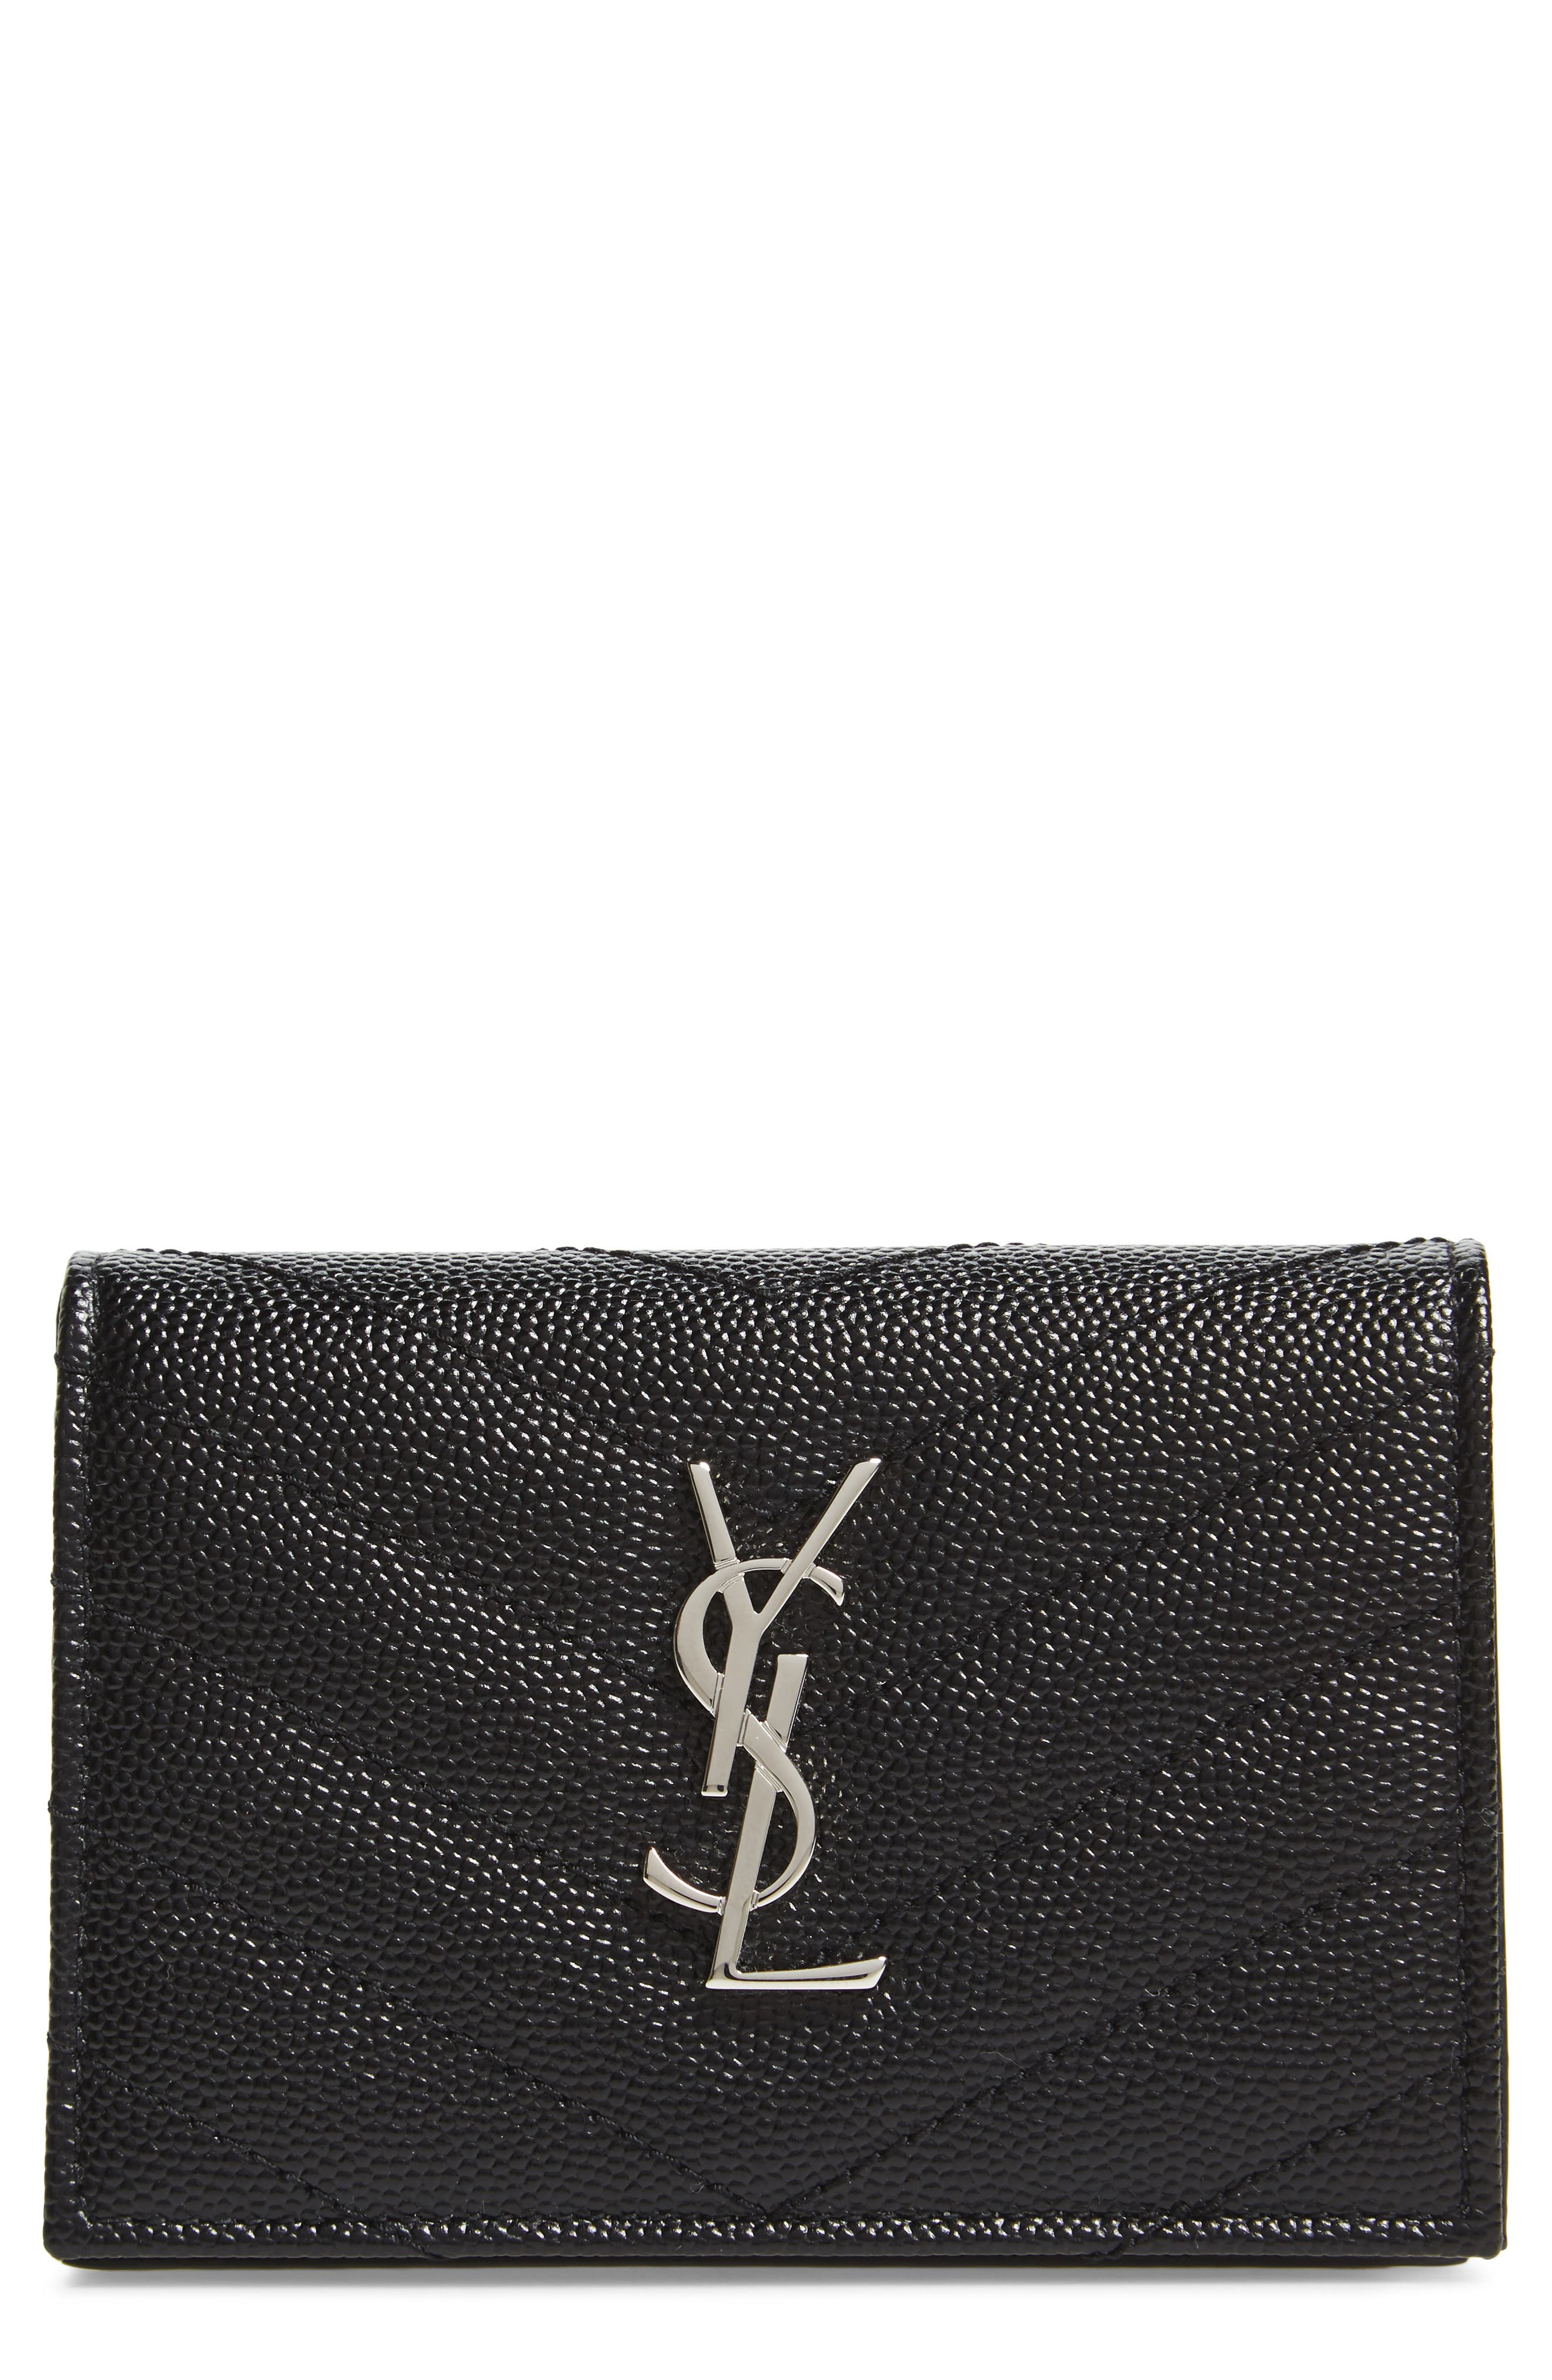 Saint Laurent Textured Leather Card Case